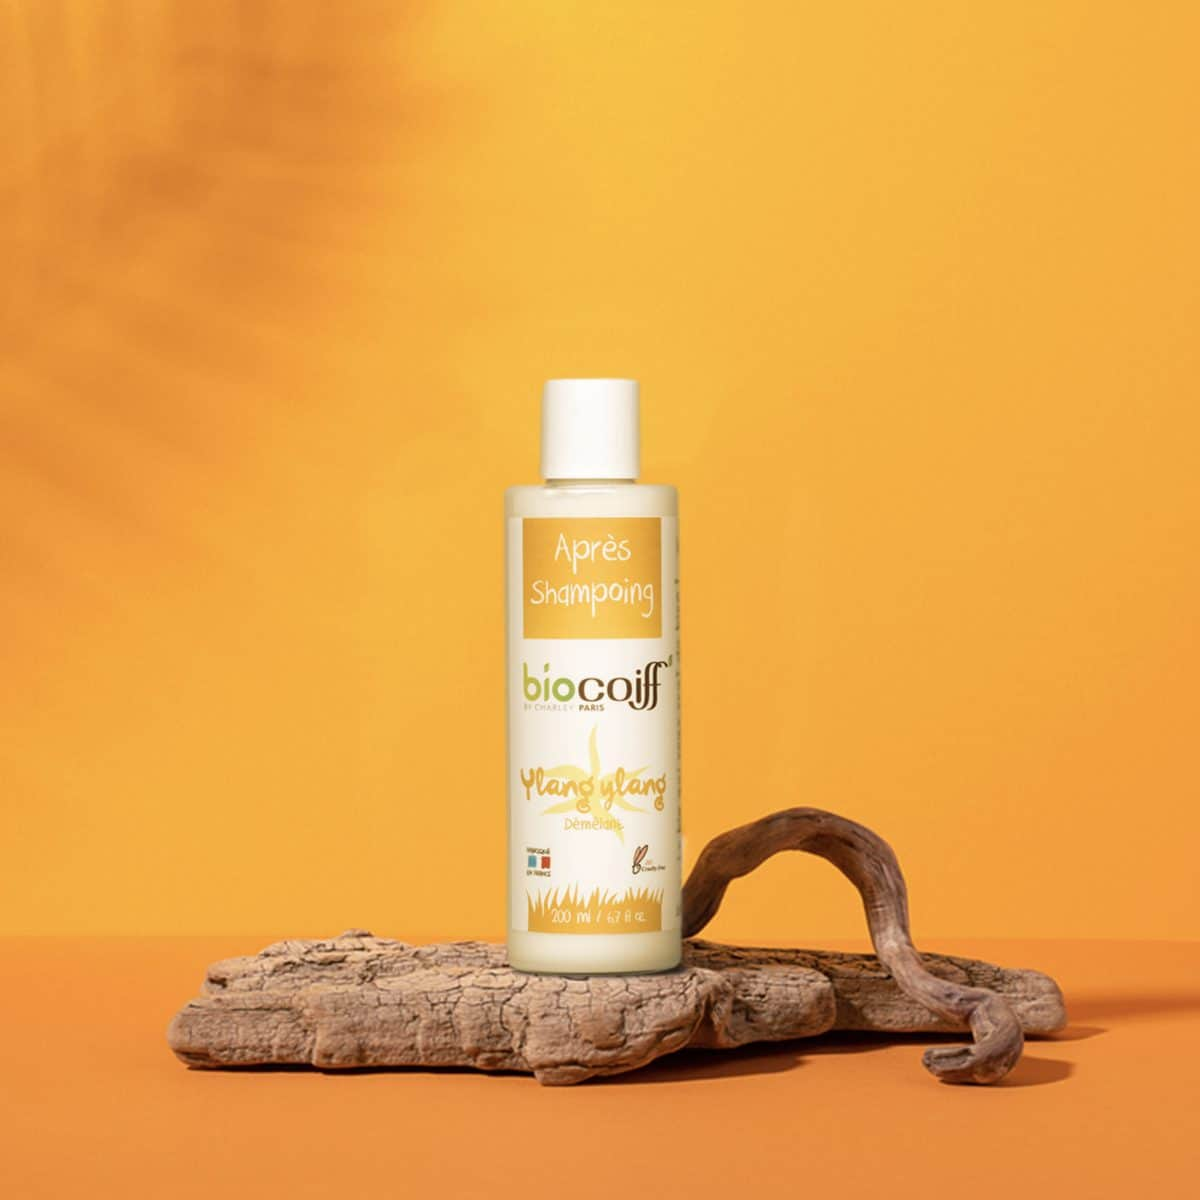 apres shampoing bio made in france